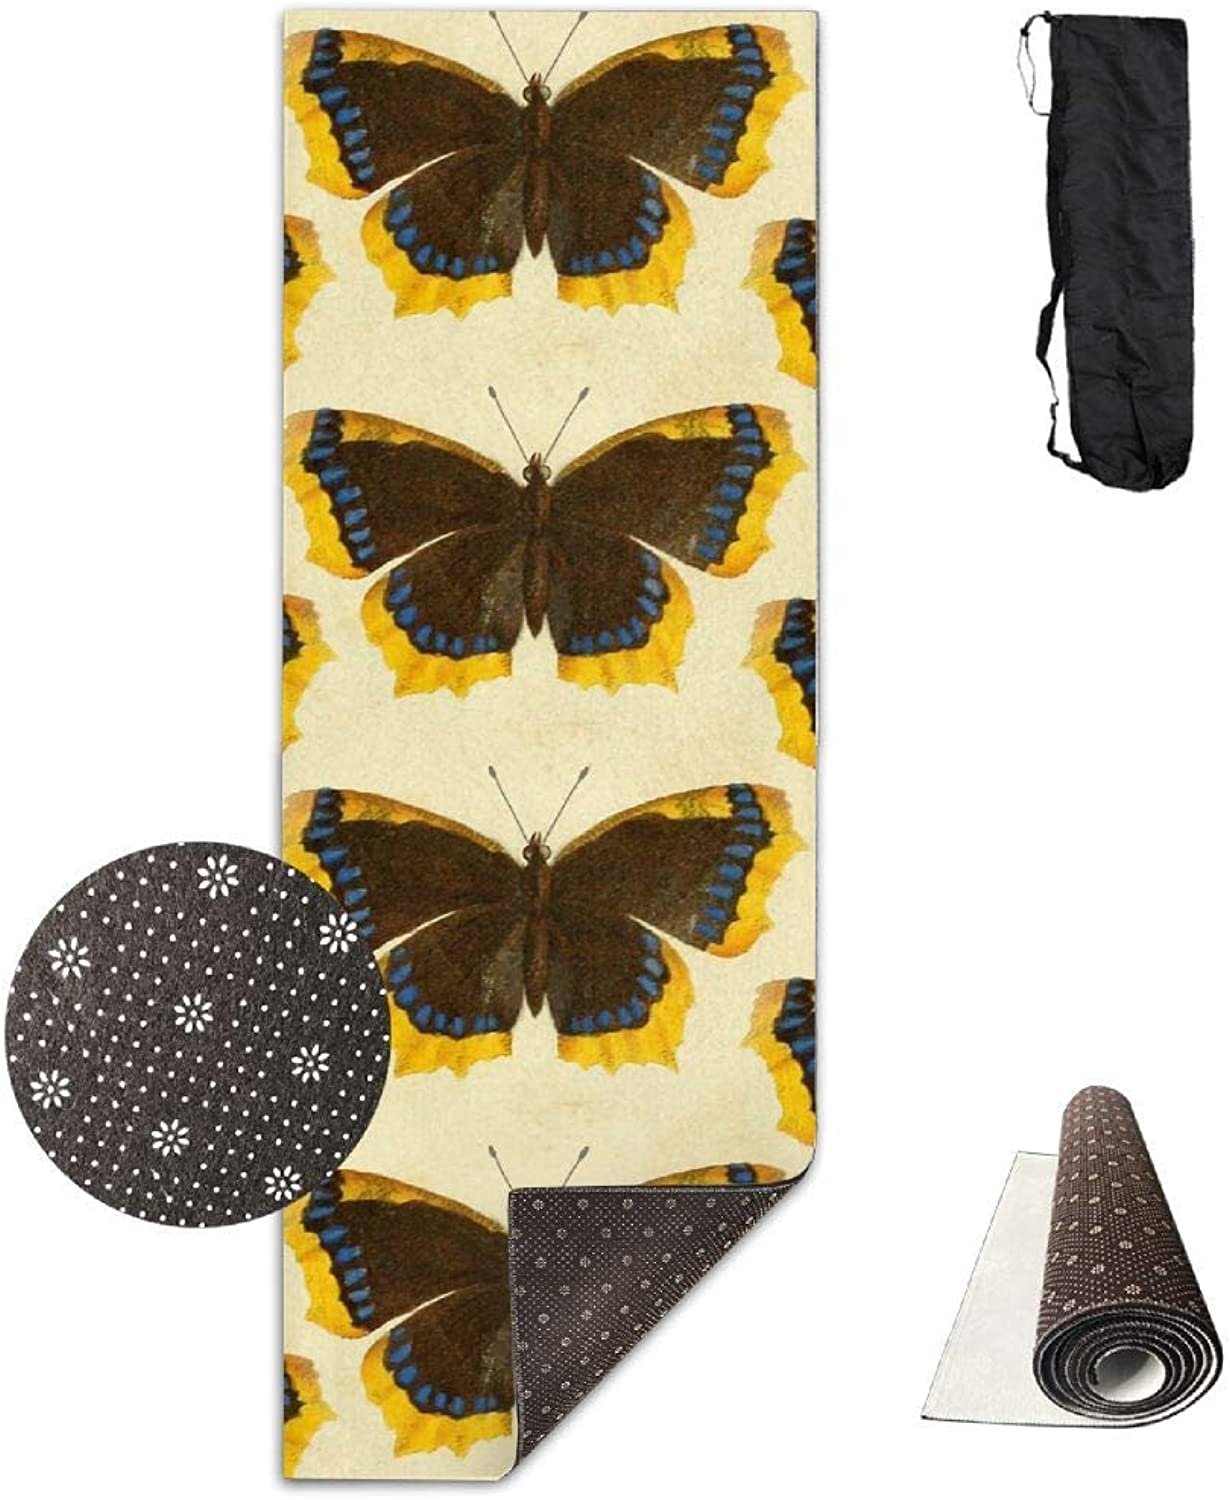 70Inch Long 28Inch Wide Comfort Velvet Yoga Mat, Butterfly Wing Collage Mat Carrying Strap & Bag